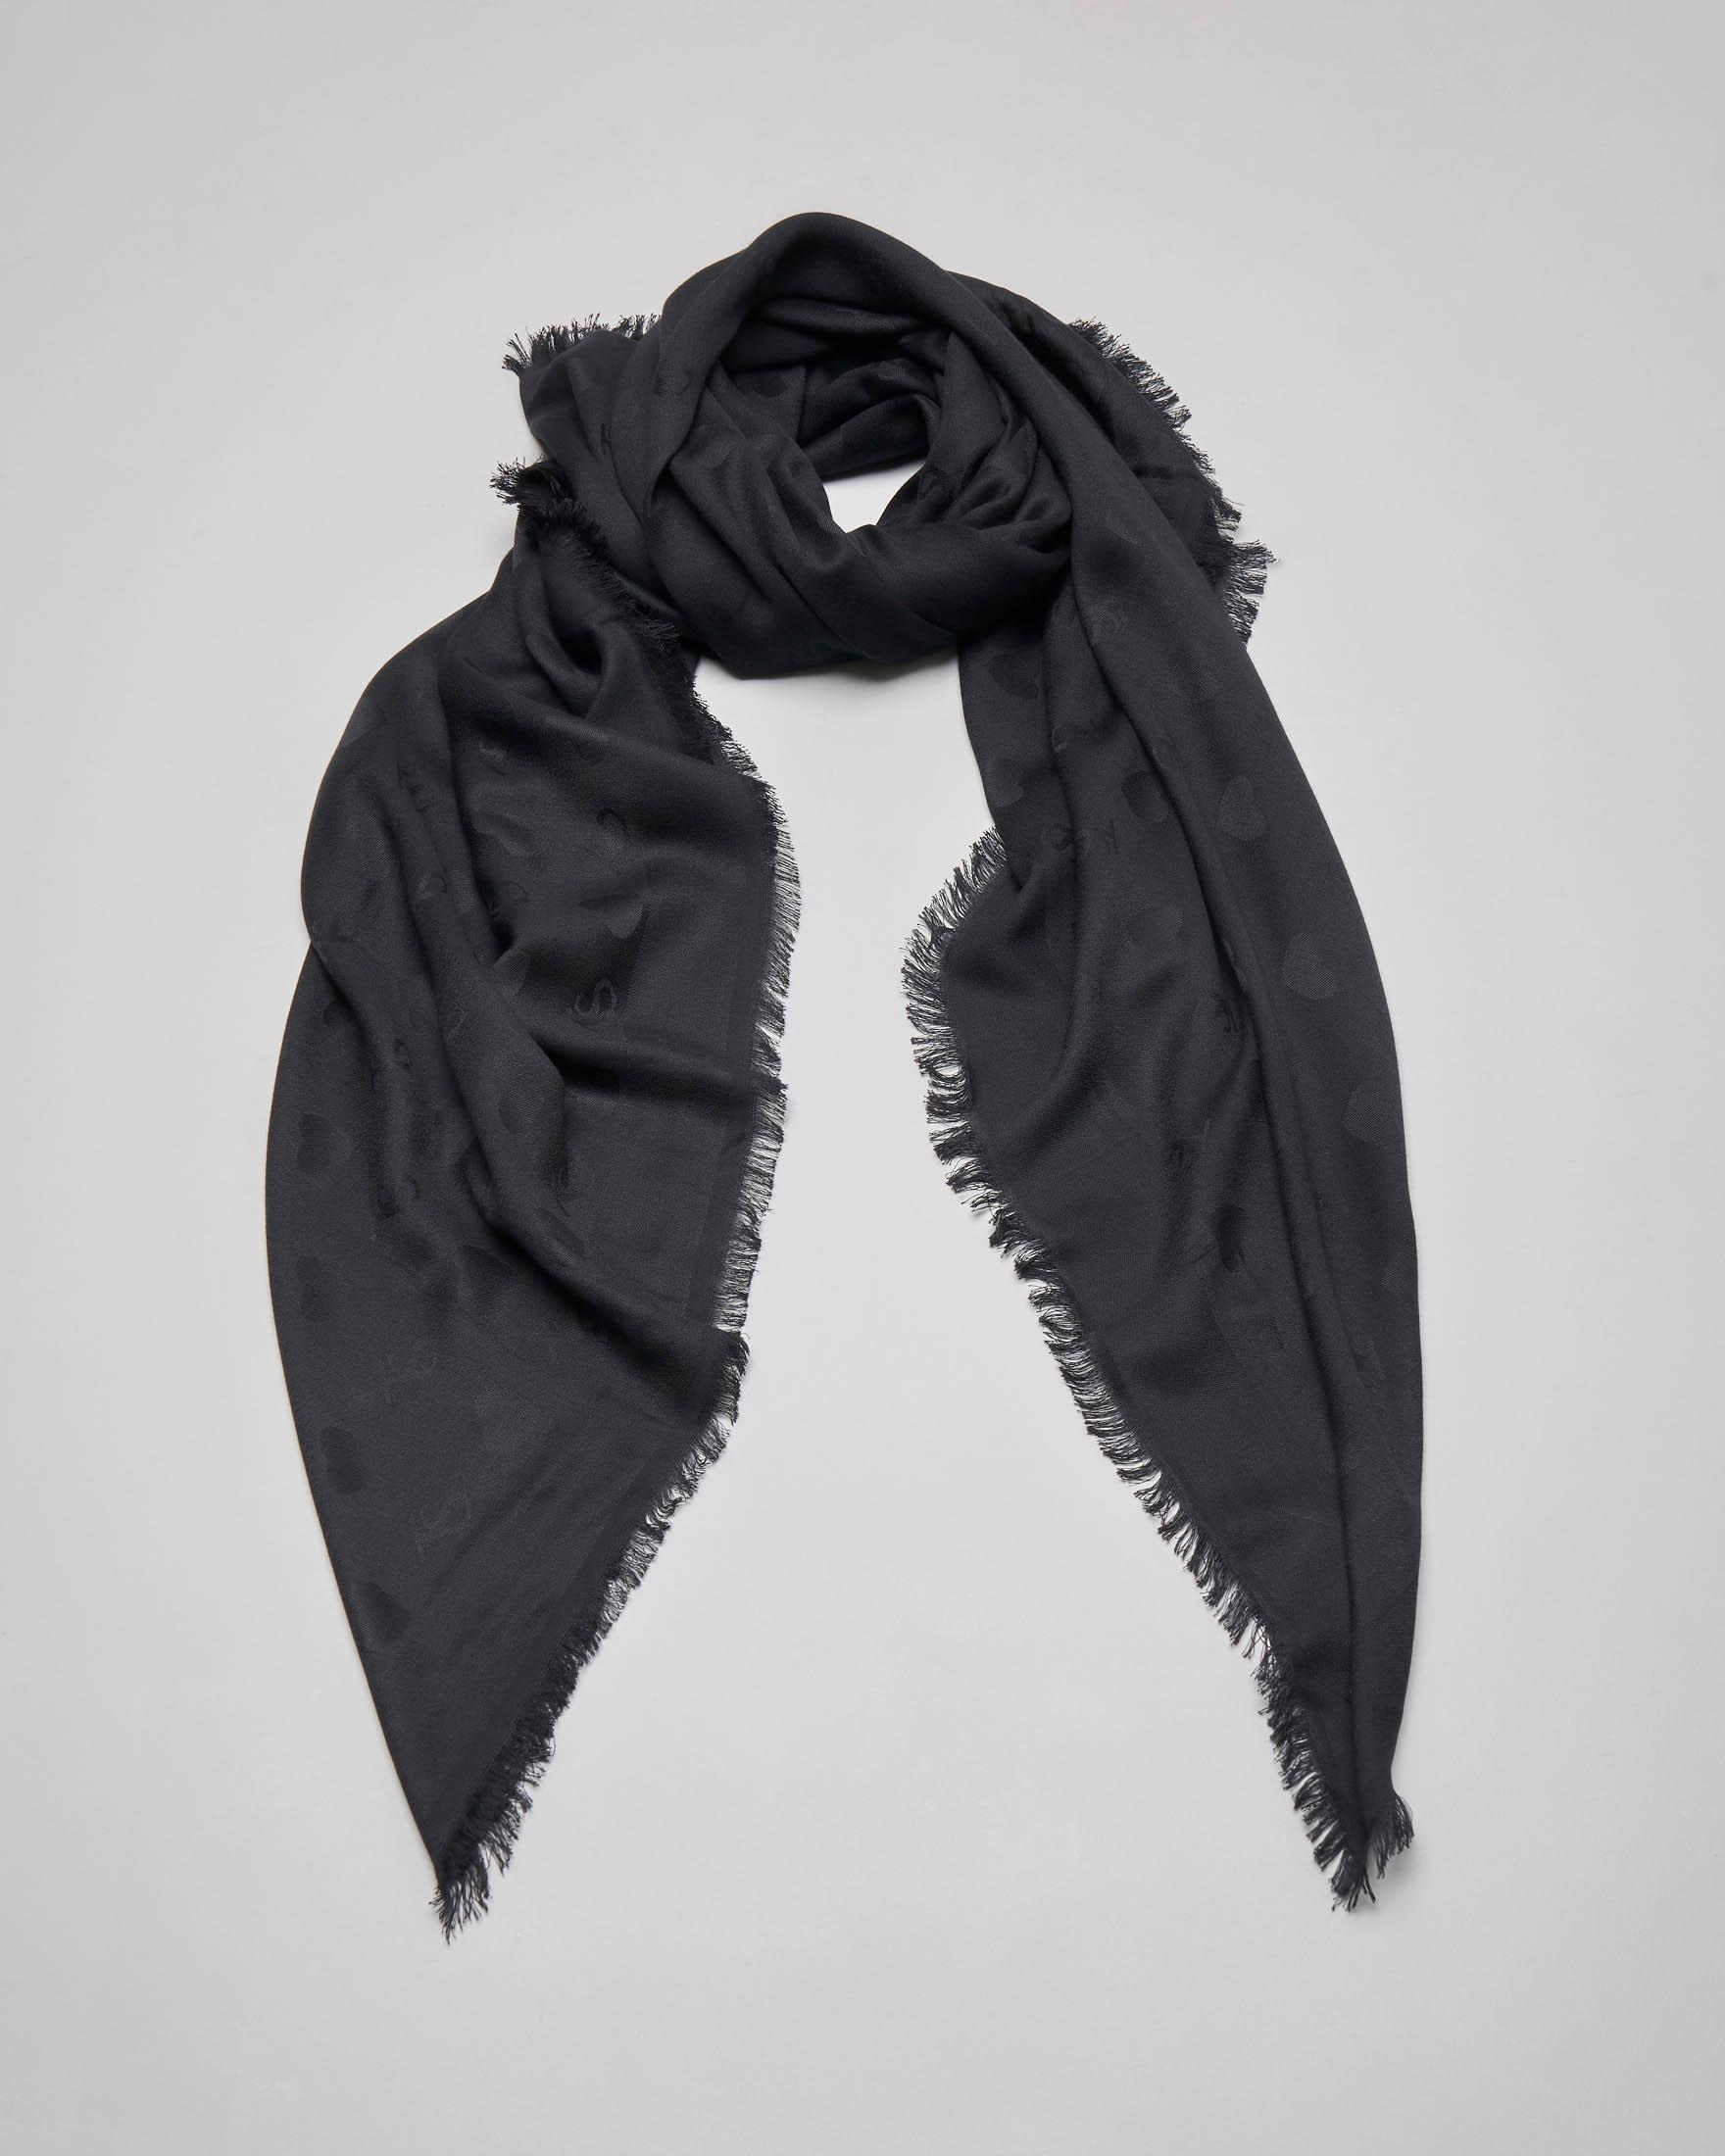 Foulard in viscosa nero con scritta logo all over tono su tono